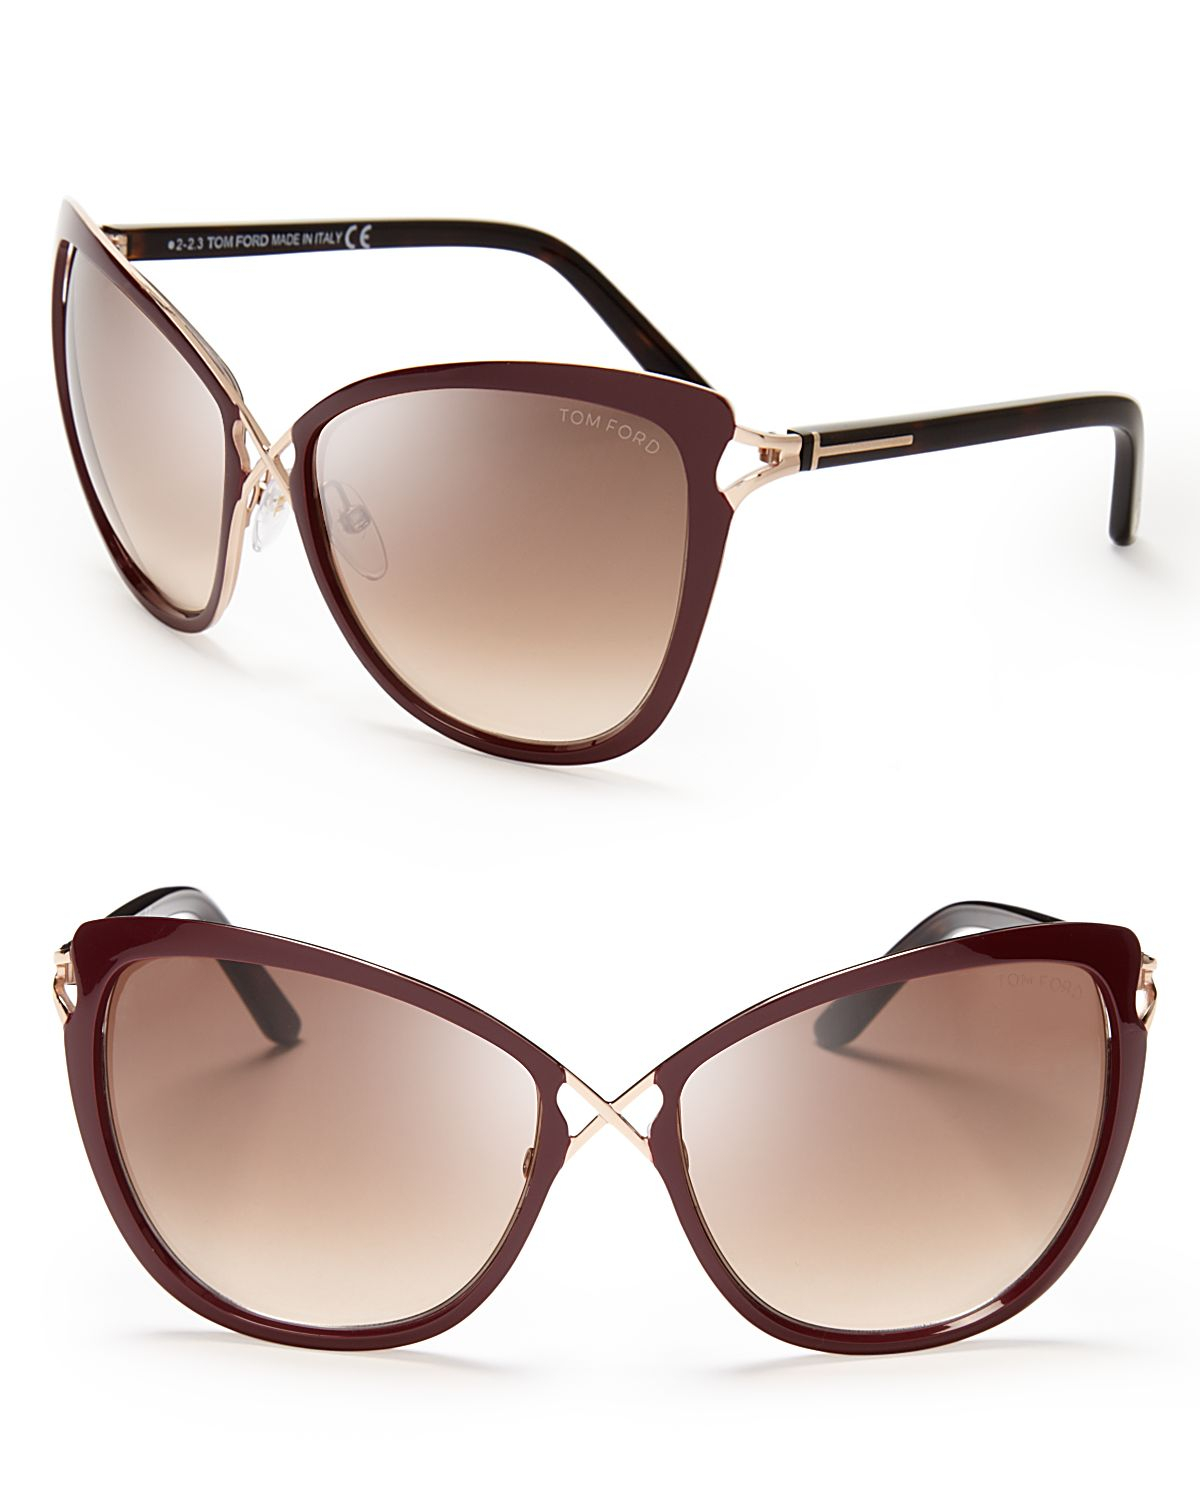 tom ford celia cat eye sunglasses in brown pale gold ivory lyst. Cars Review. Best American Auto & Cars Review